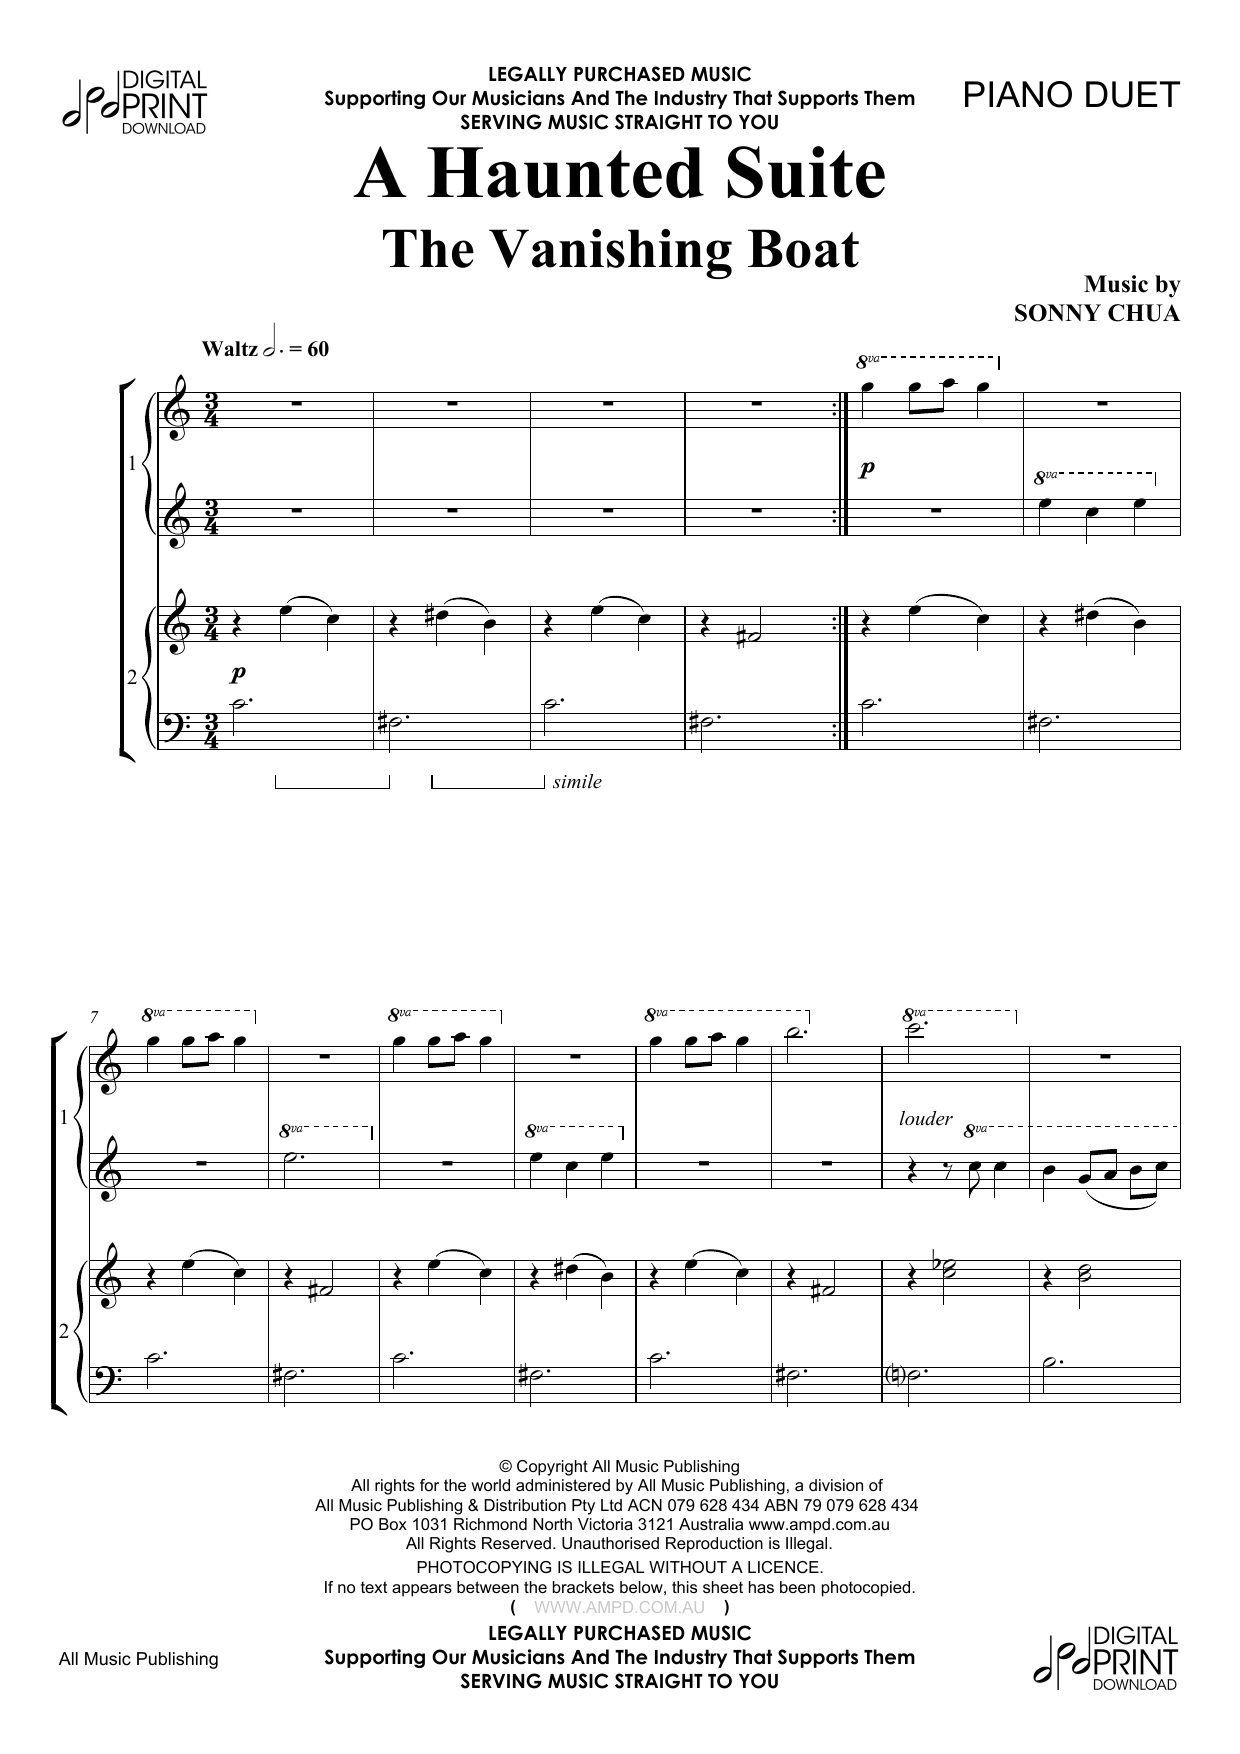 A Haunted Suite - The Vanishing Boat Sheet Music